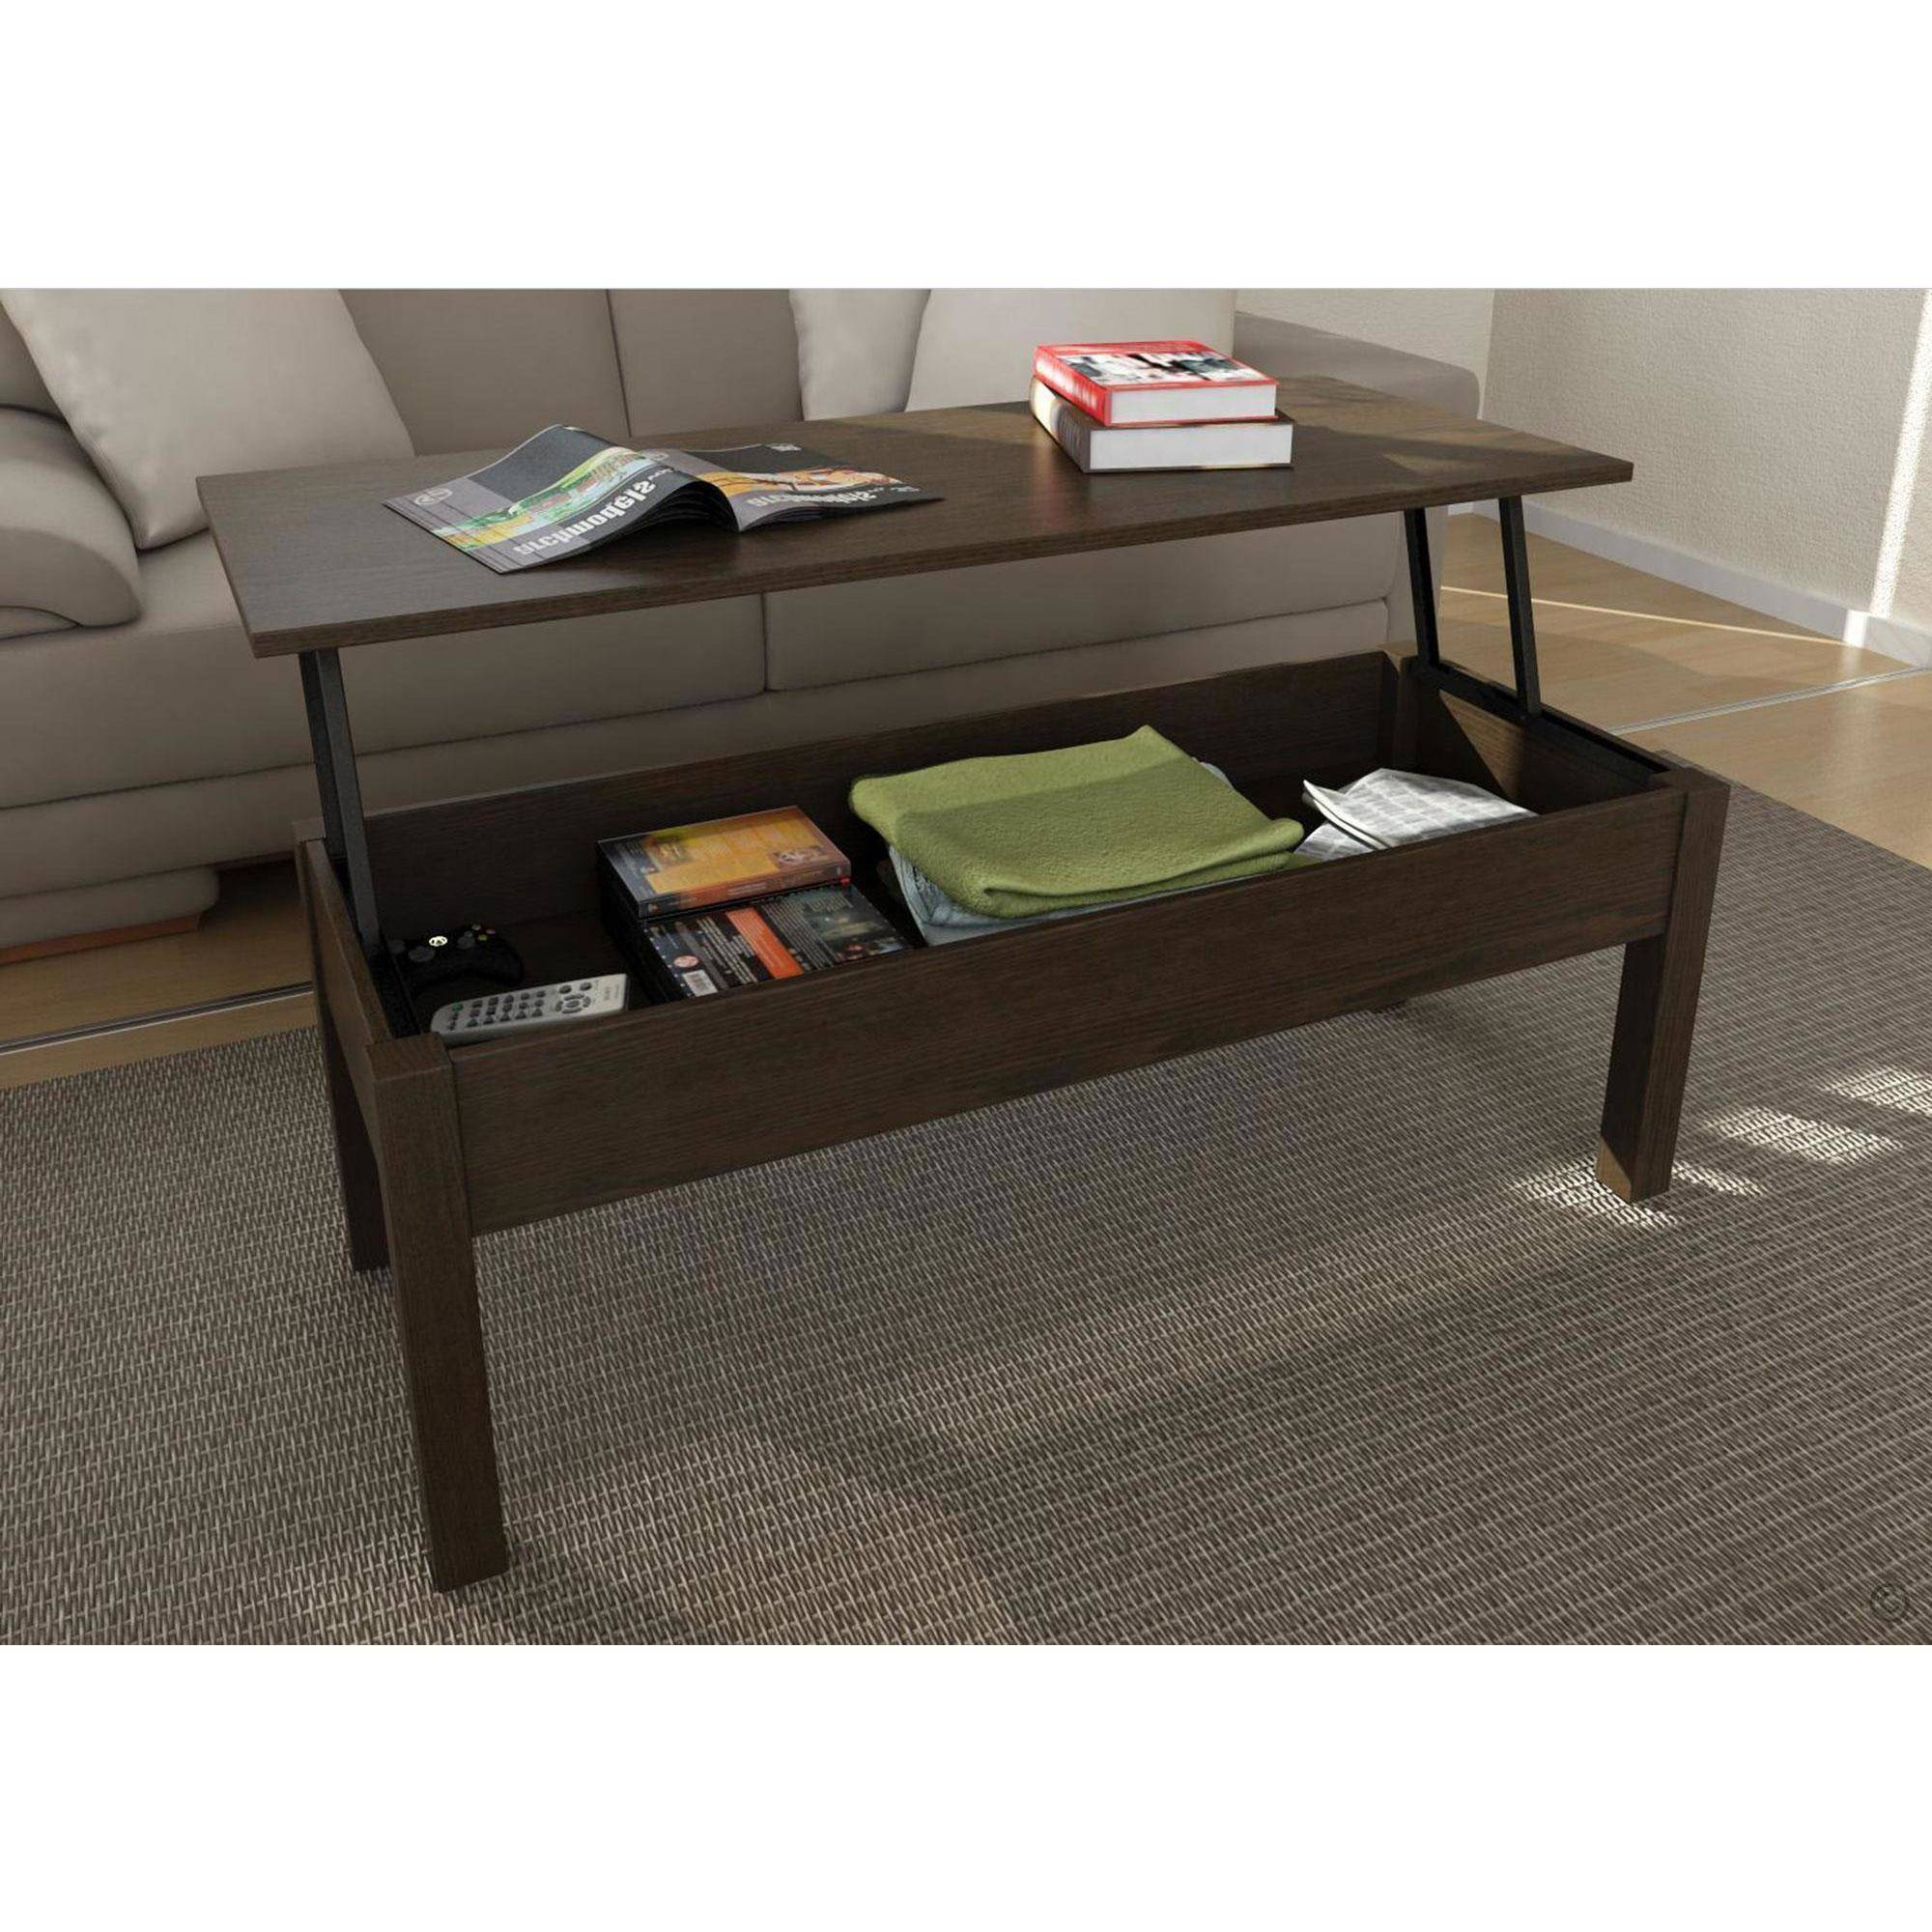 mainstays lifttop coffee table multiple colors  walmartcom -